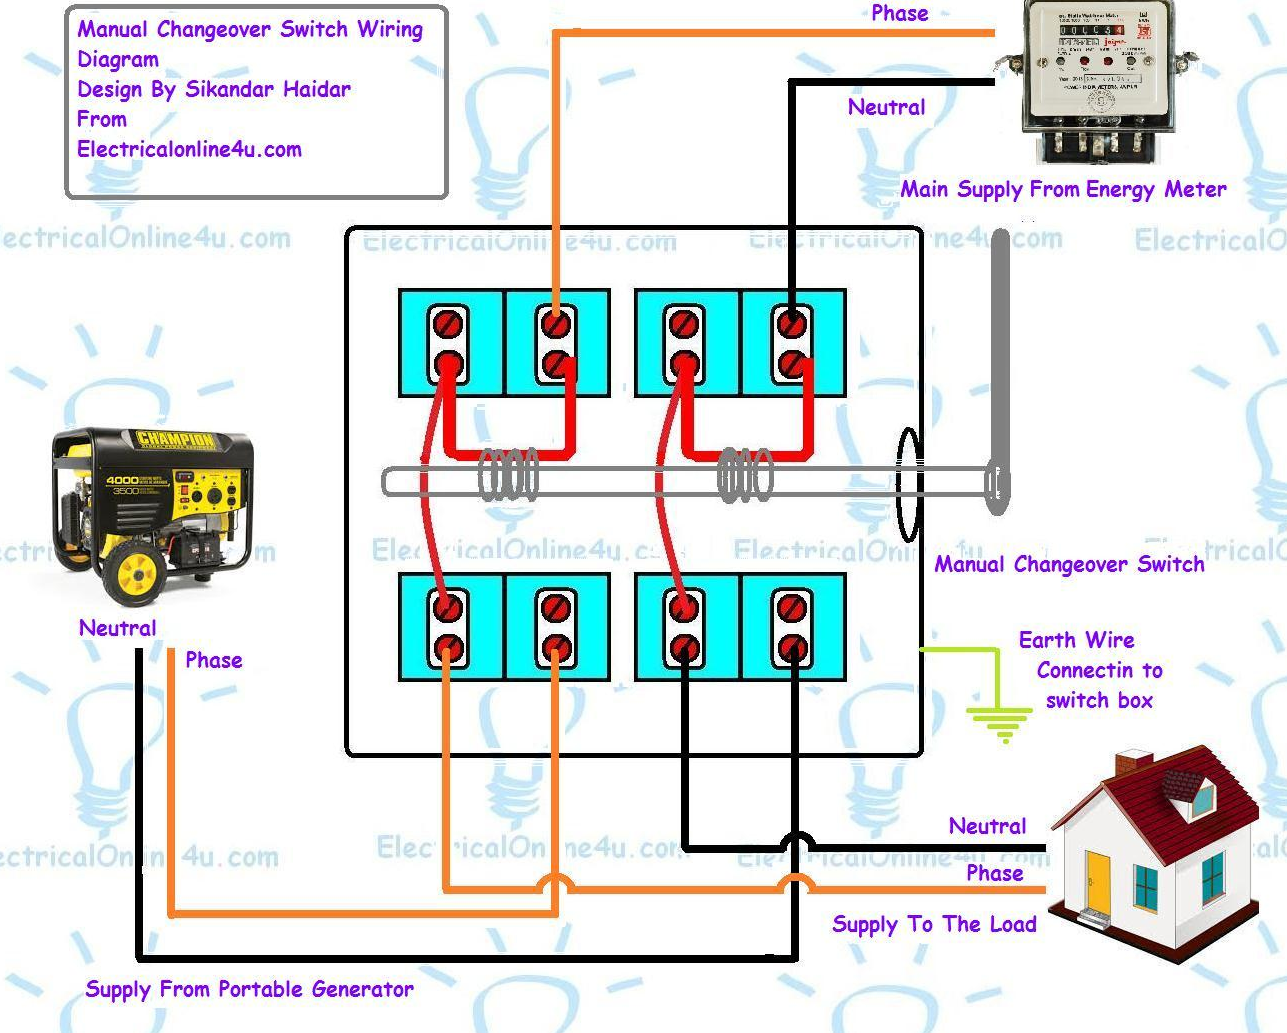 manual%2Bchangeover%2Bswitch%2Bwiring%2Bdiagram manual changeover switch wiring diagram for portable generator online wiring diagram creator at panicattacktreatment.co